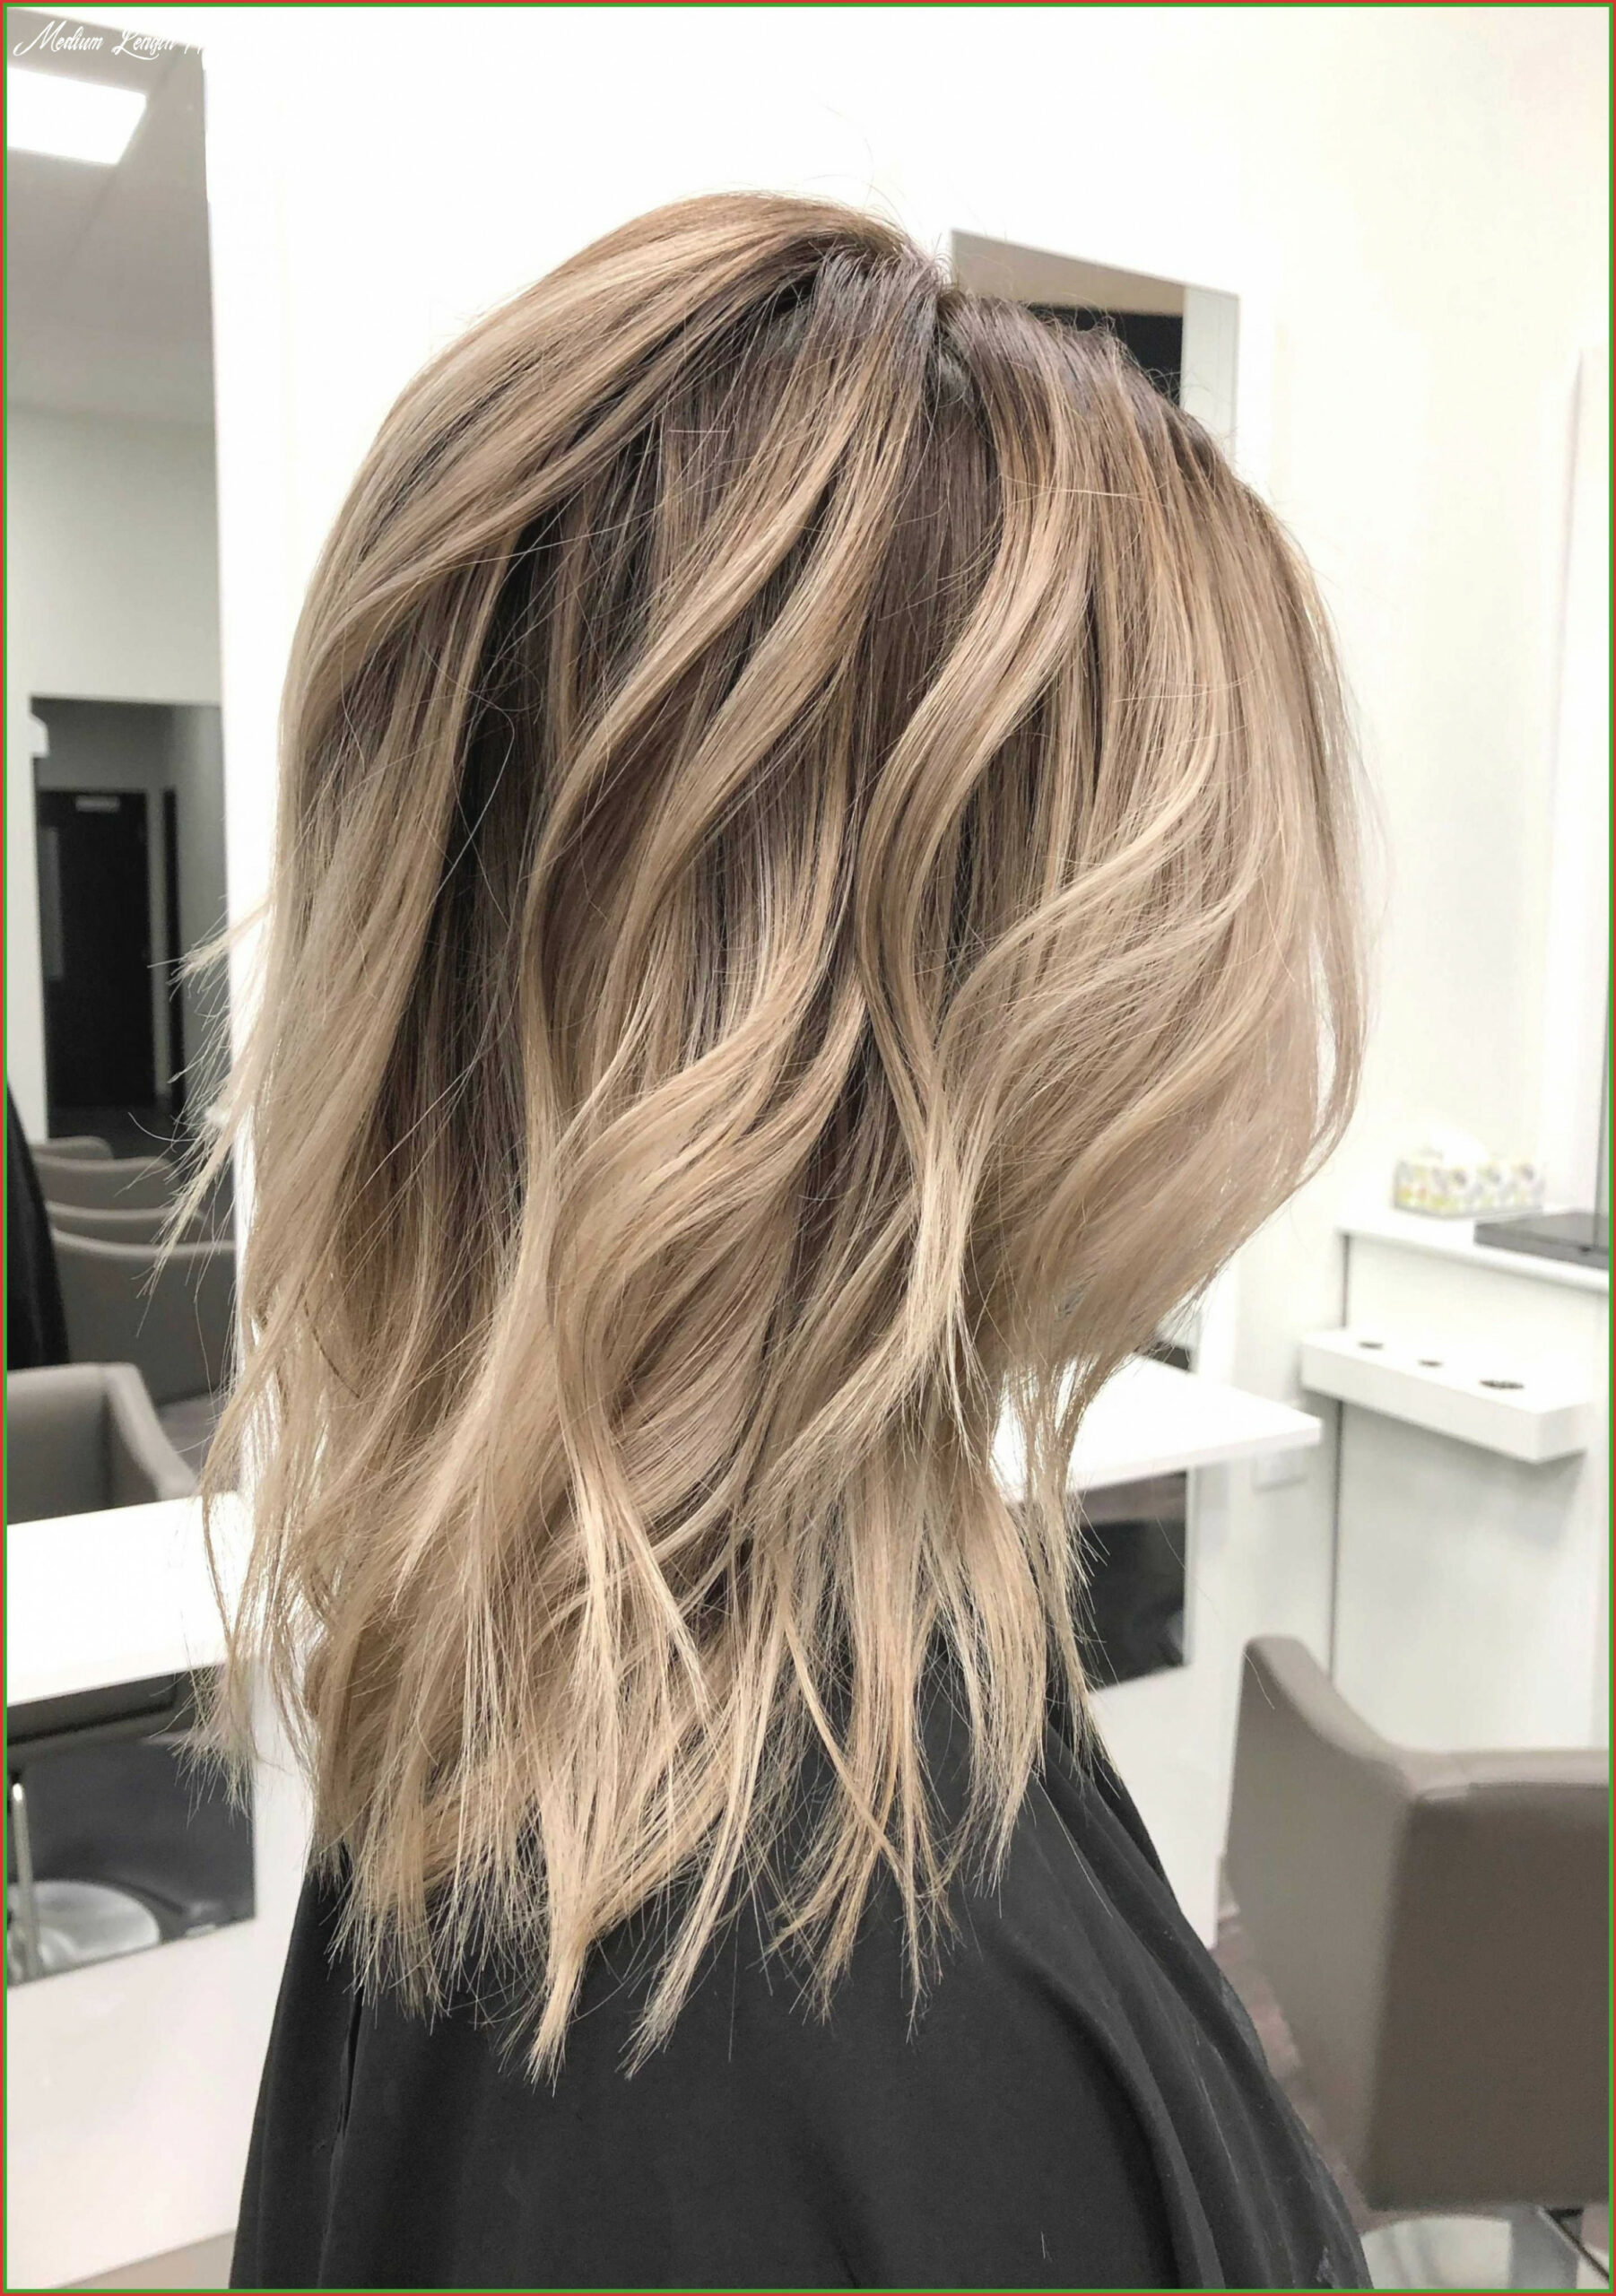 Medium length hairstyles for going out fresh hair color ideas for